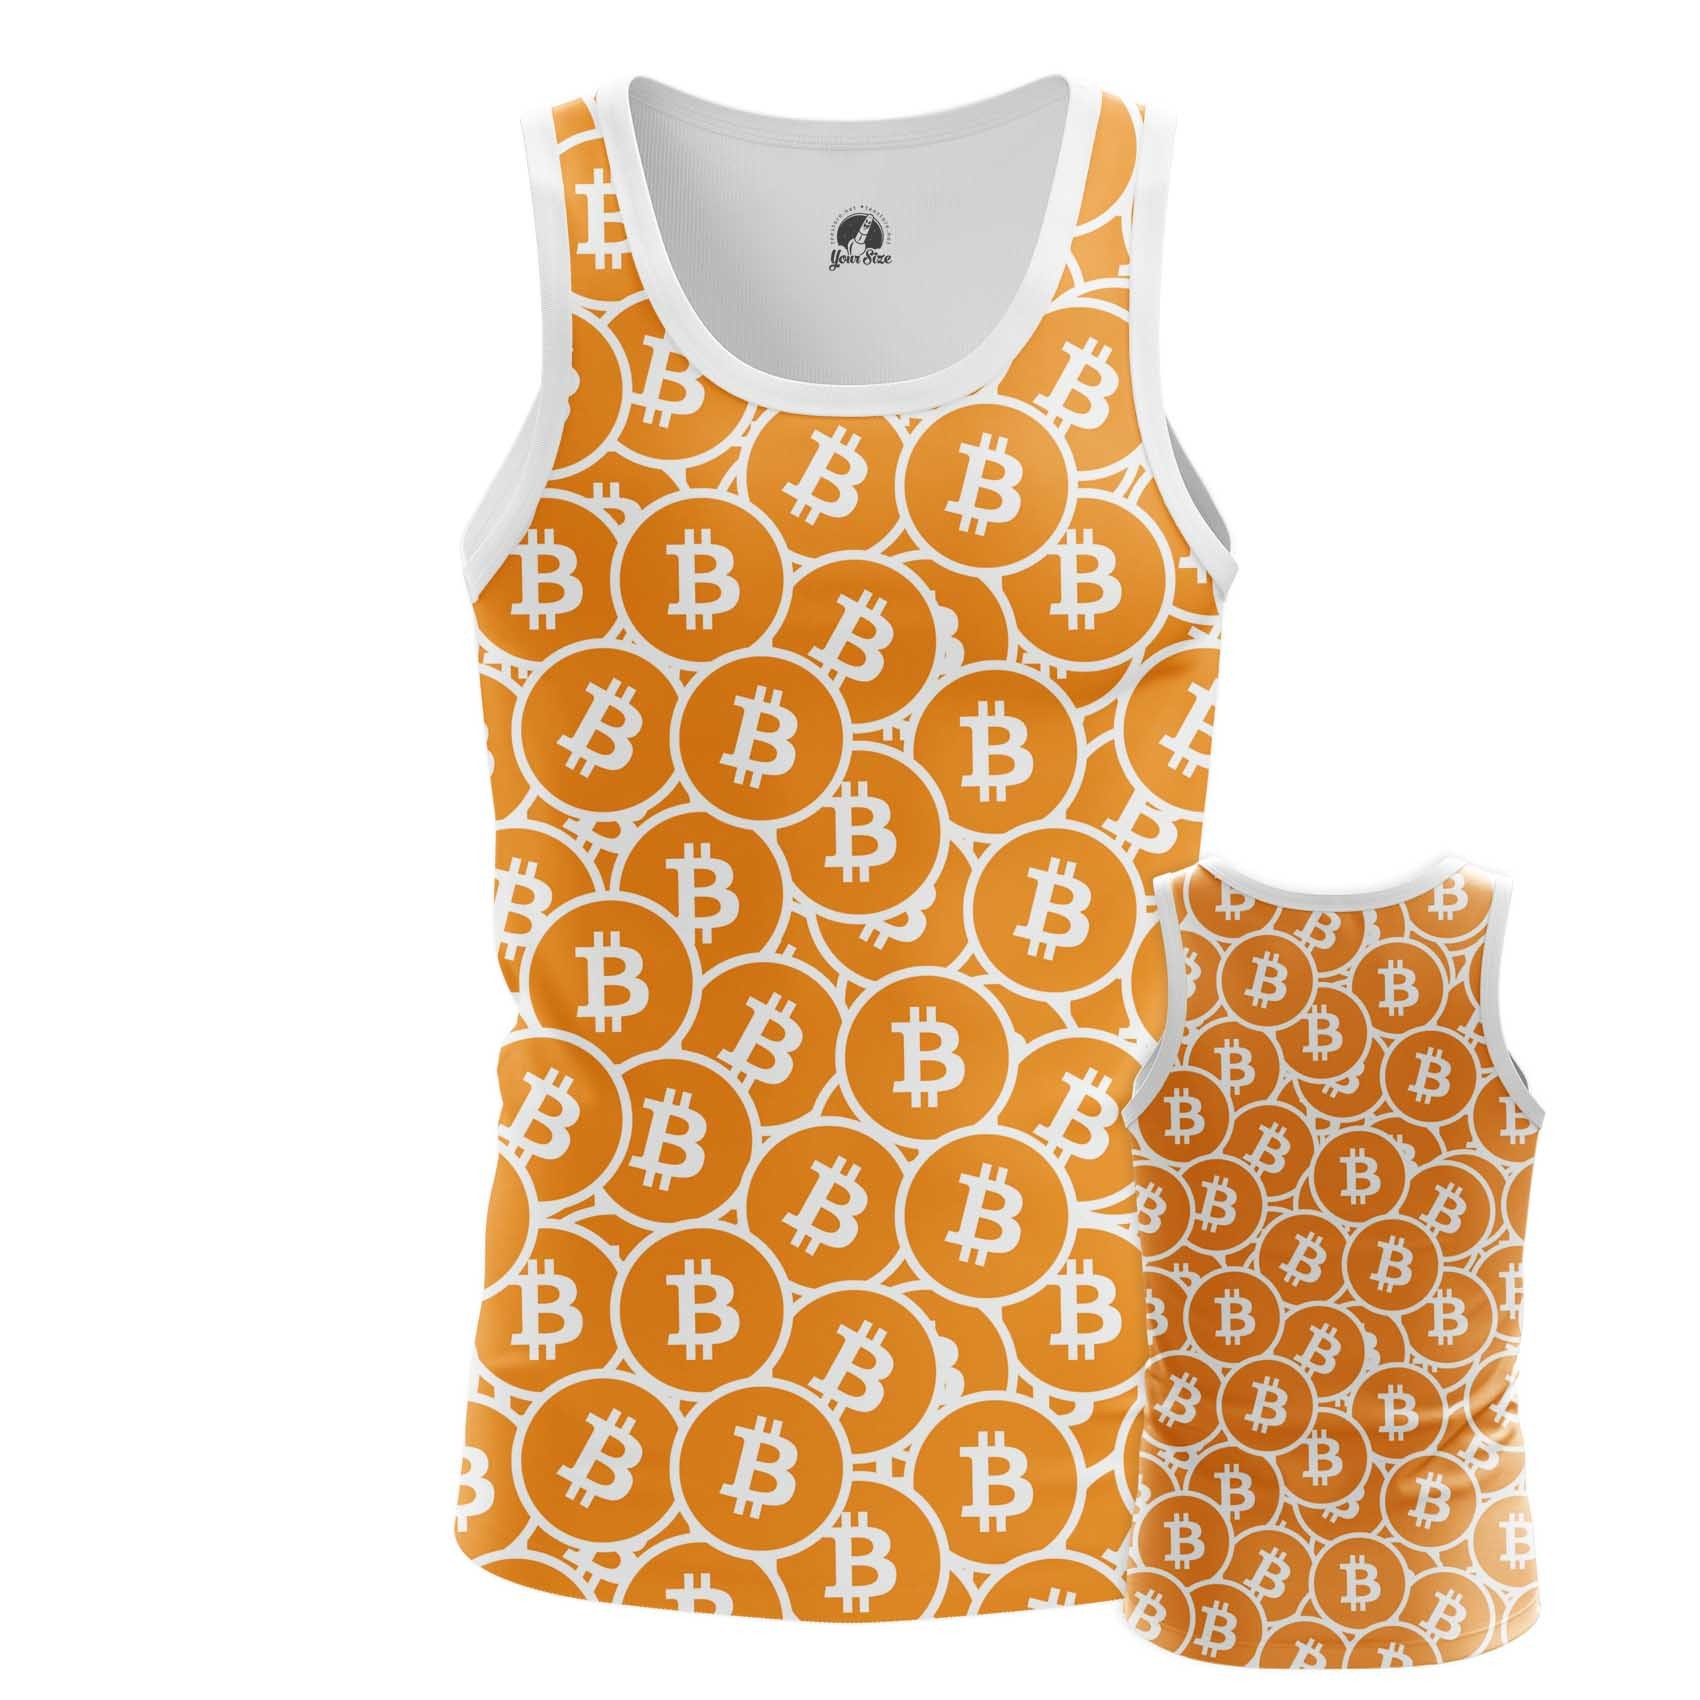 Merch Long Sleeve Bitcoin Pattern Mining Cryptocurrency